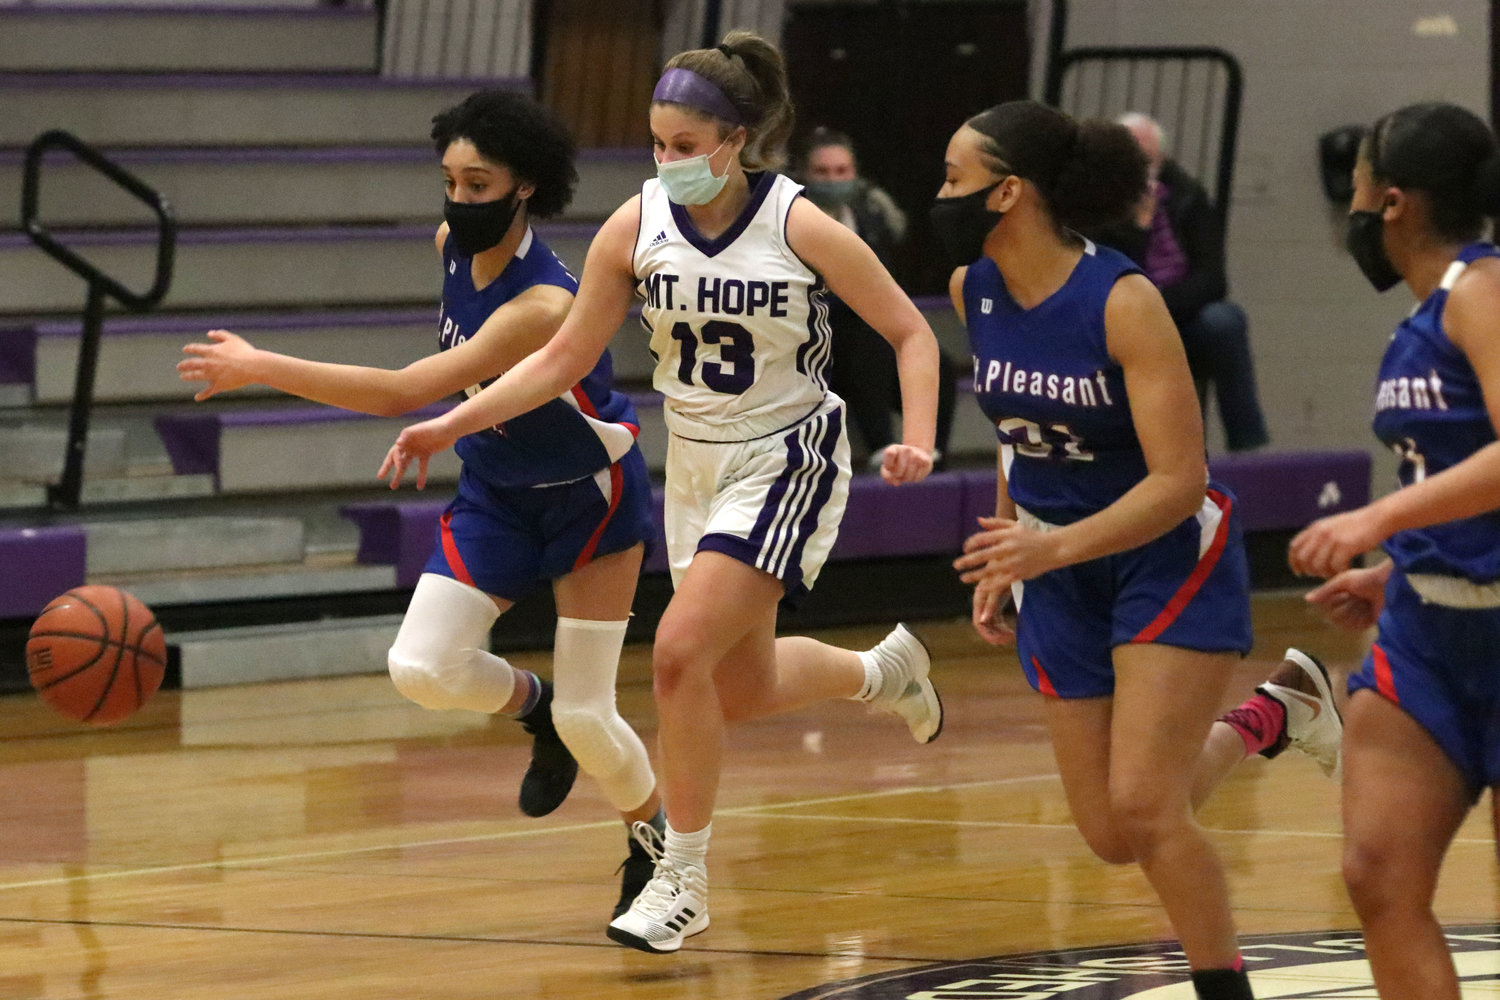 Point guard Abby Razzino dribbles up court after making a steal in the first quarter of their game against Mt. Pleasant on Thursday night. The sophomore scored 17 points in the victory.